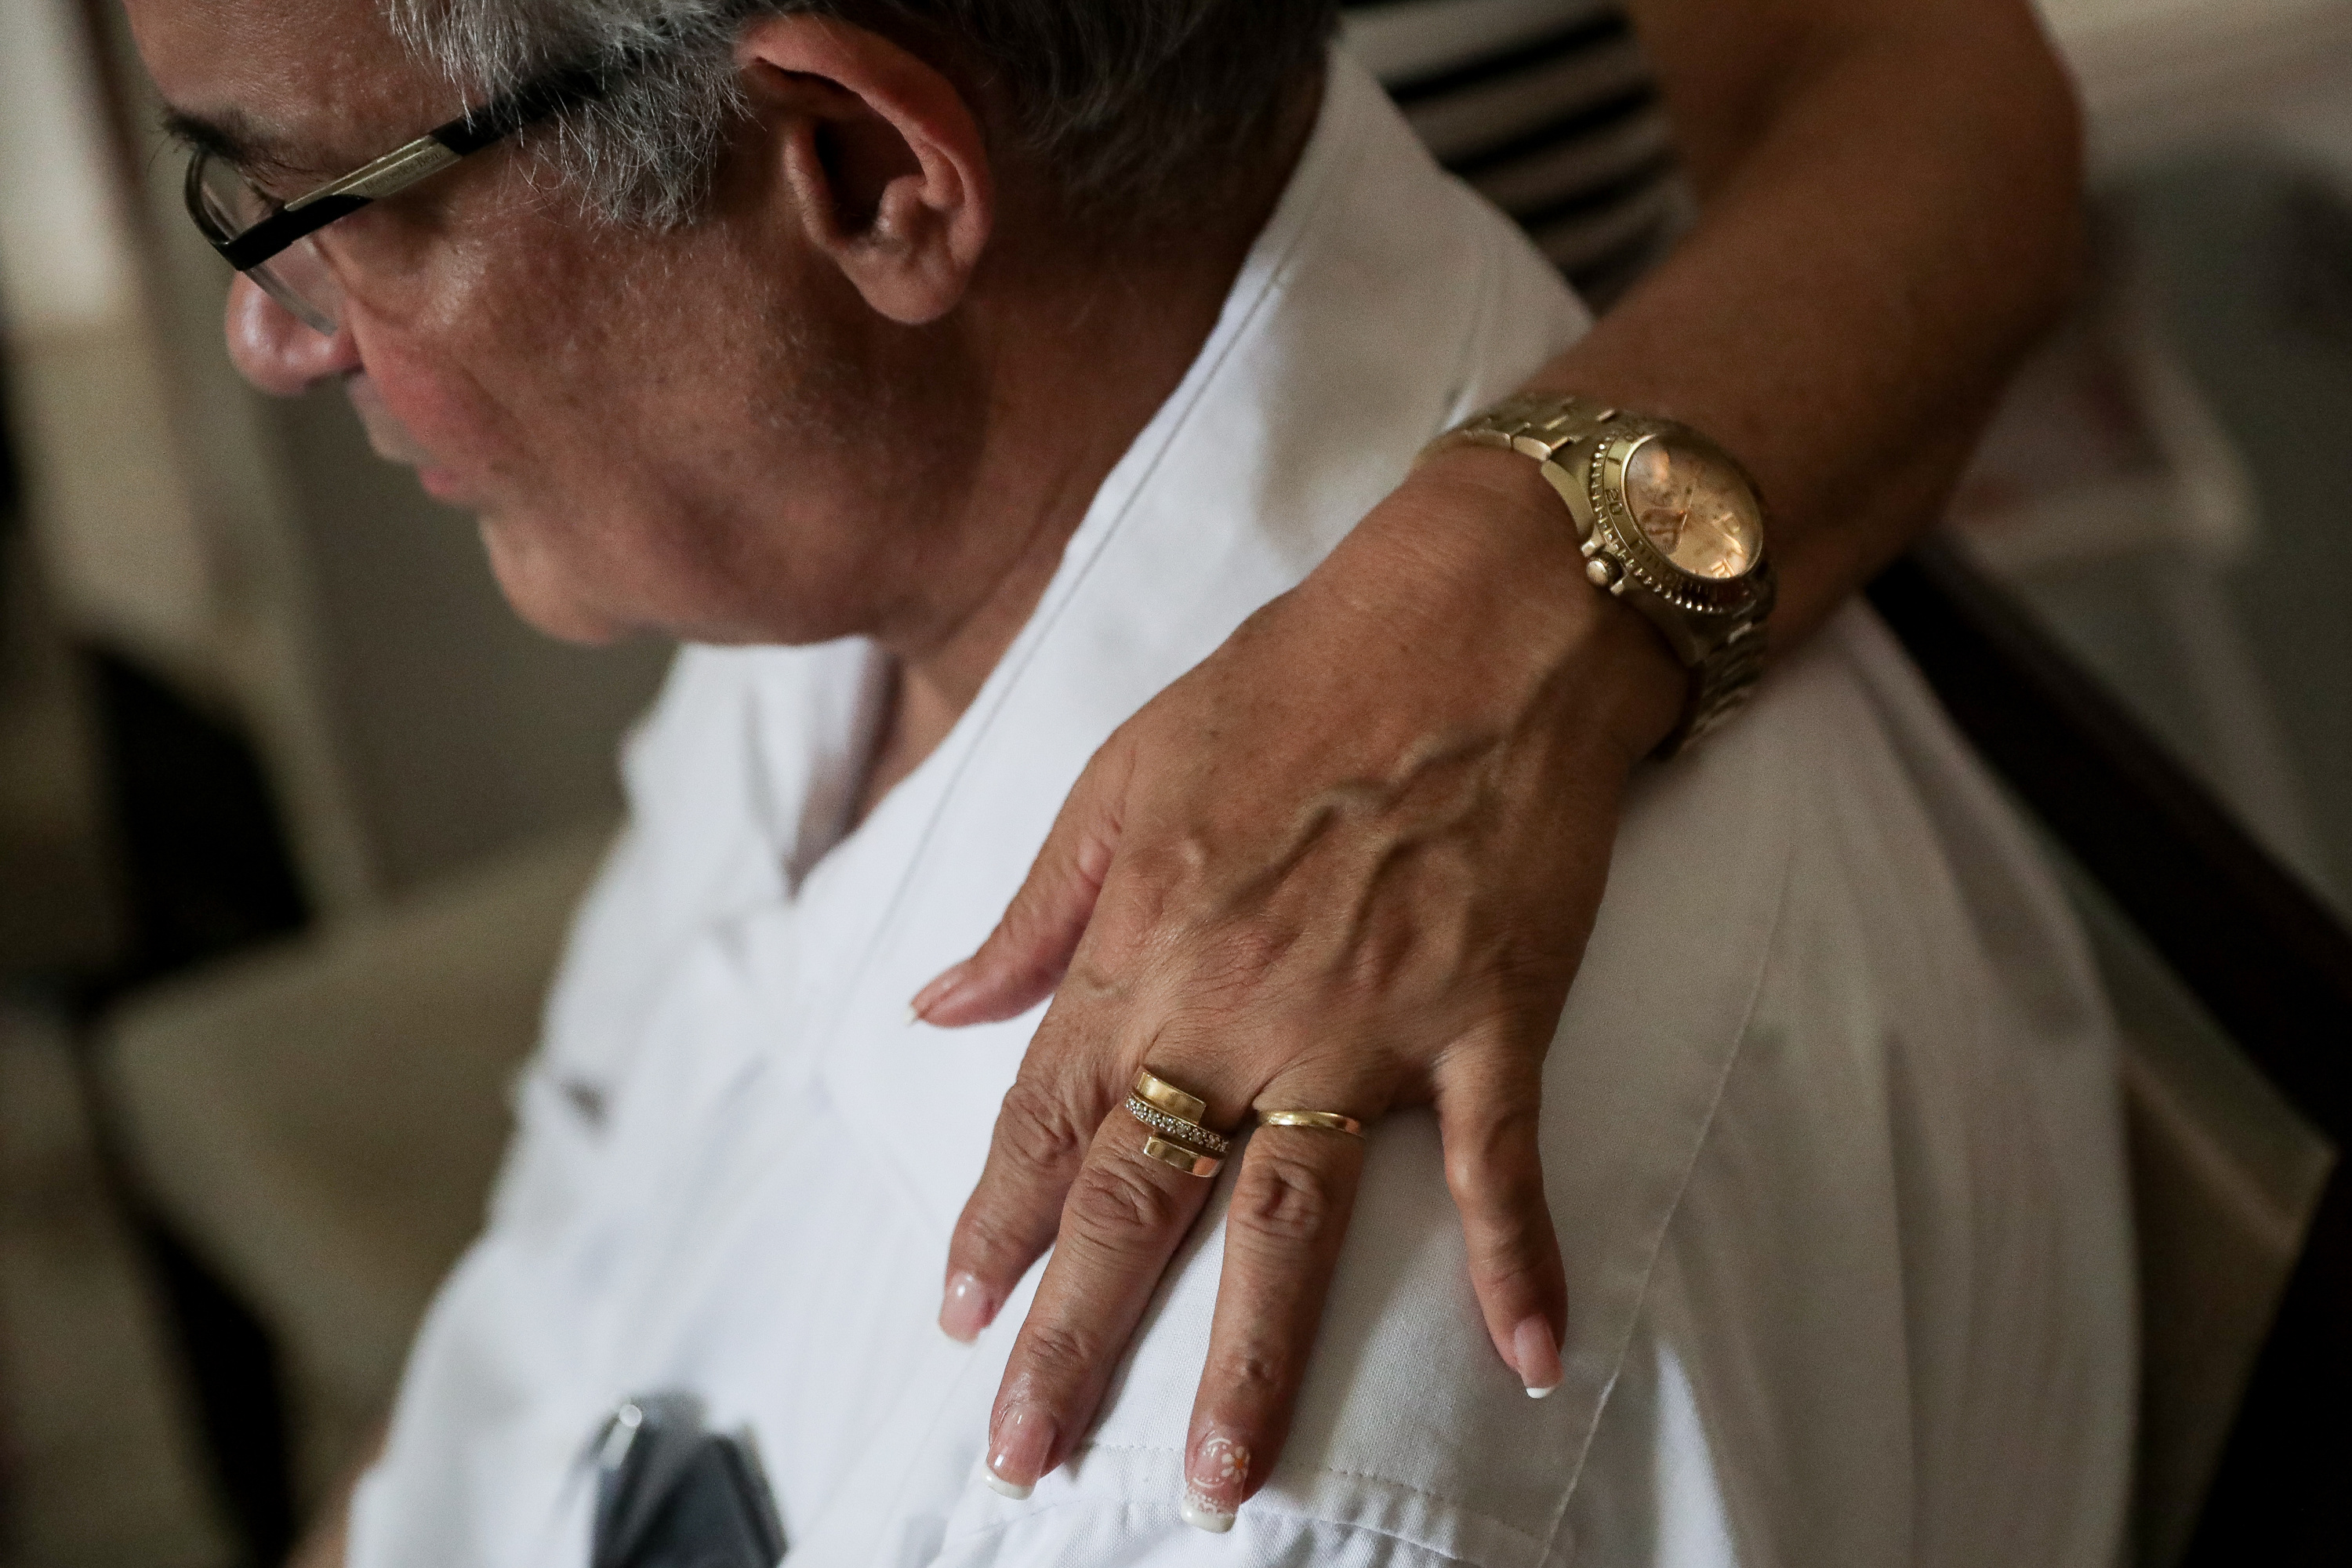 Iracema Saihg rests her hand on her husband, Paulo Almeida Saihg's, shoulder while he recalls long bus journeys to visit the Sao Paulo temple in their high-rise apartment in Recife, Brazil, on Saturday, May 26, 2018.